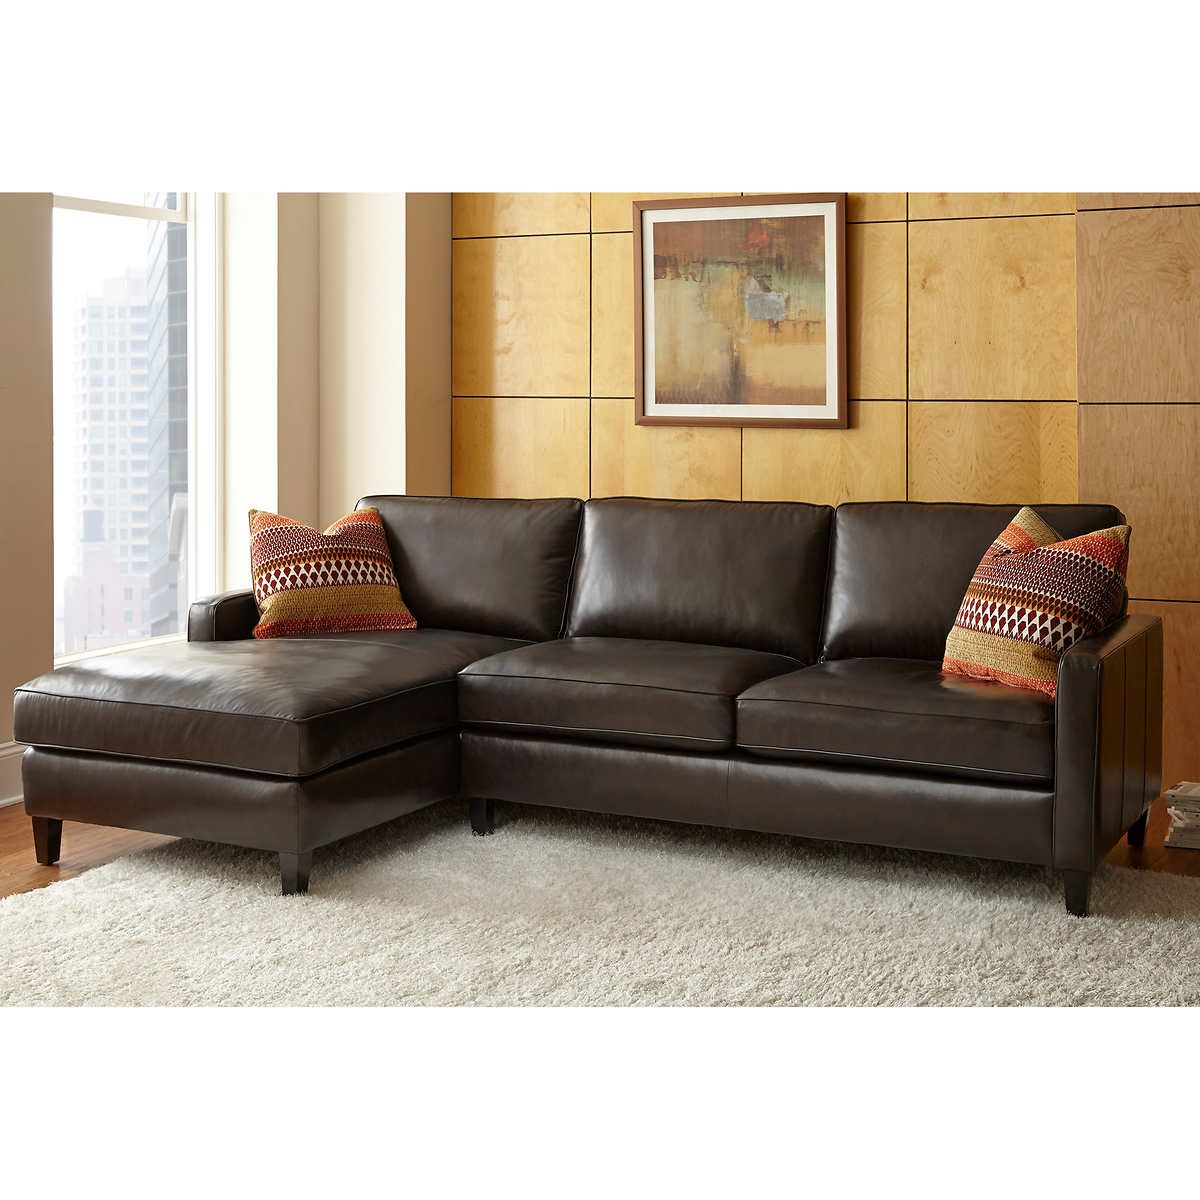 Andersen Top Grain Leather Chaise Sectional Best sofa